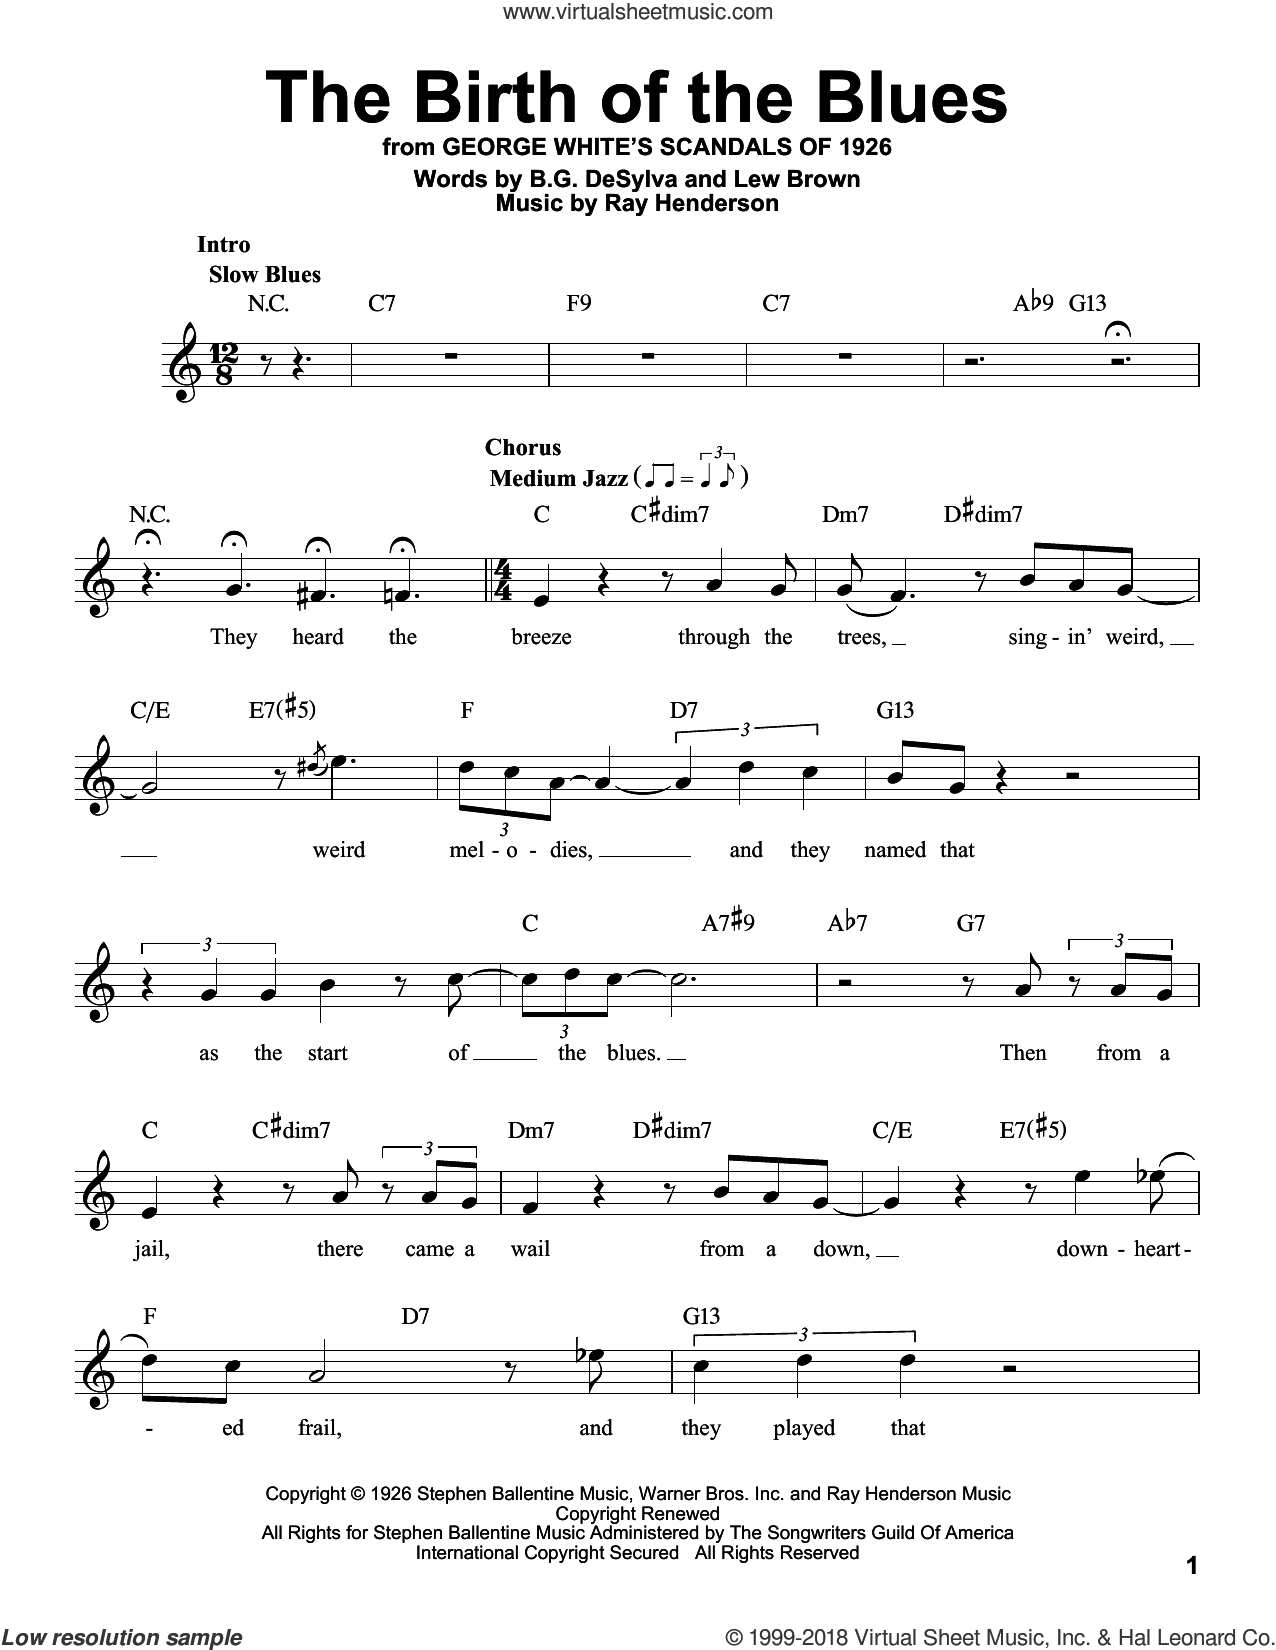 The Birth Of The Blues sheet music for voice solo by Buddy DeSylva, Lew Brown and Ray Henderson, intermediate skill level